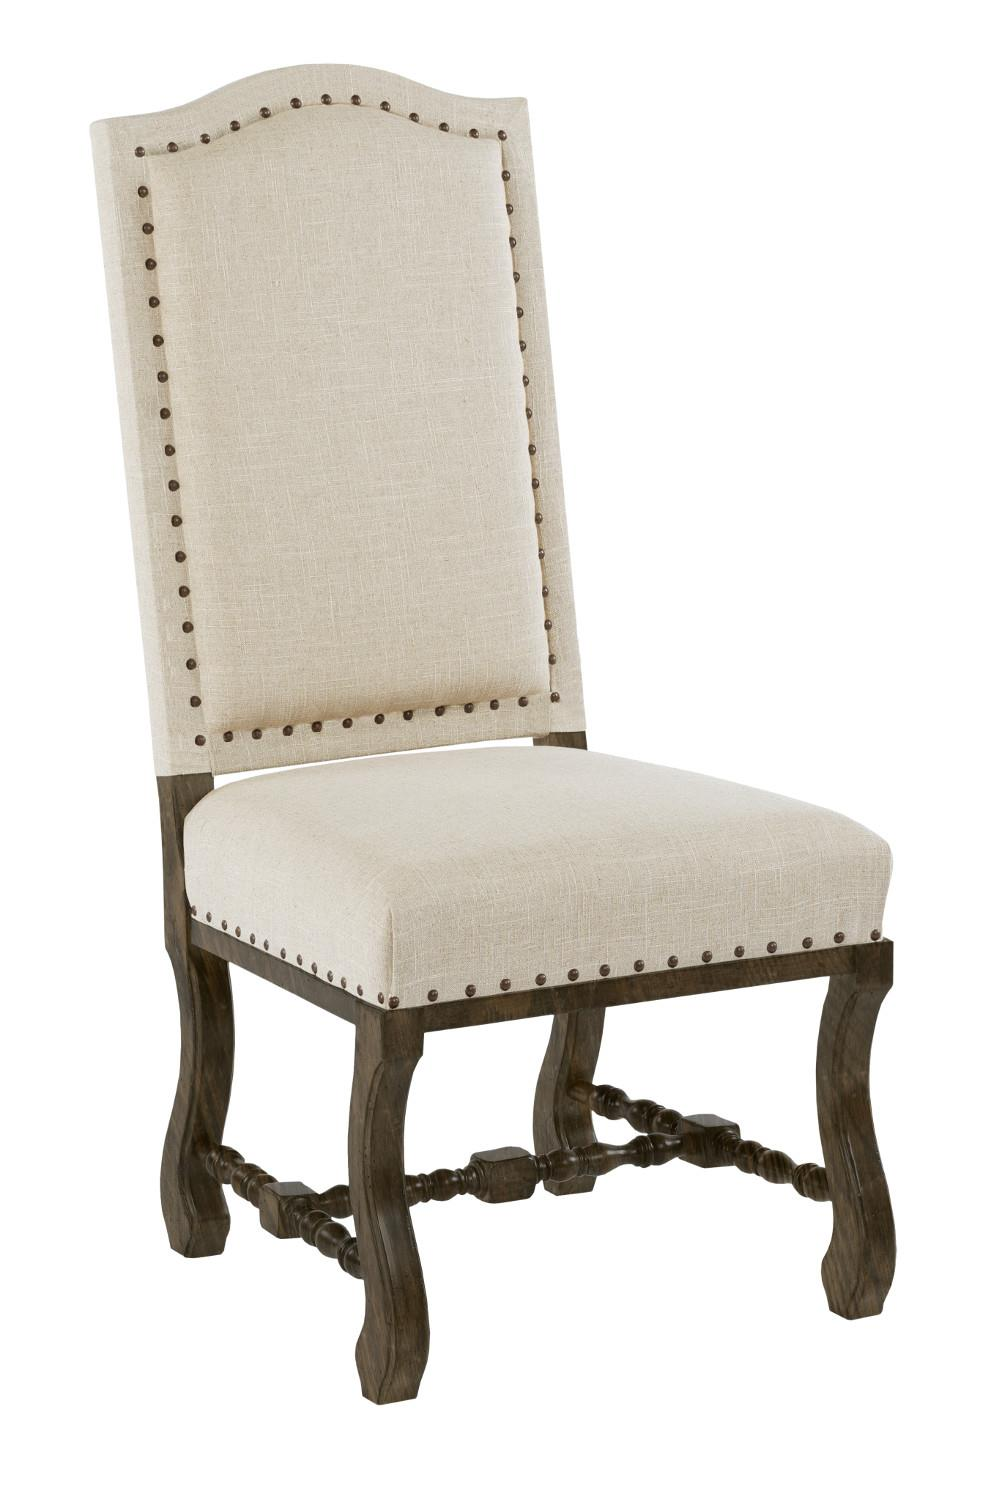 Kincaid Furniture Artisan's Shoppe Dining Upholstered Dining Chair - Item Number: 90-4229S